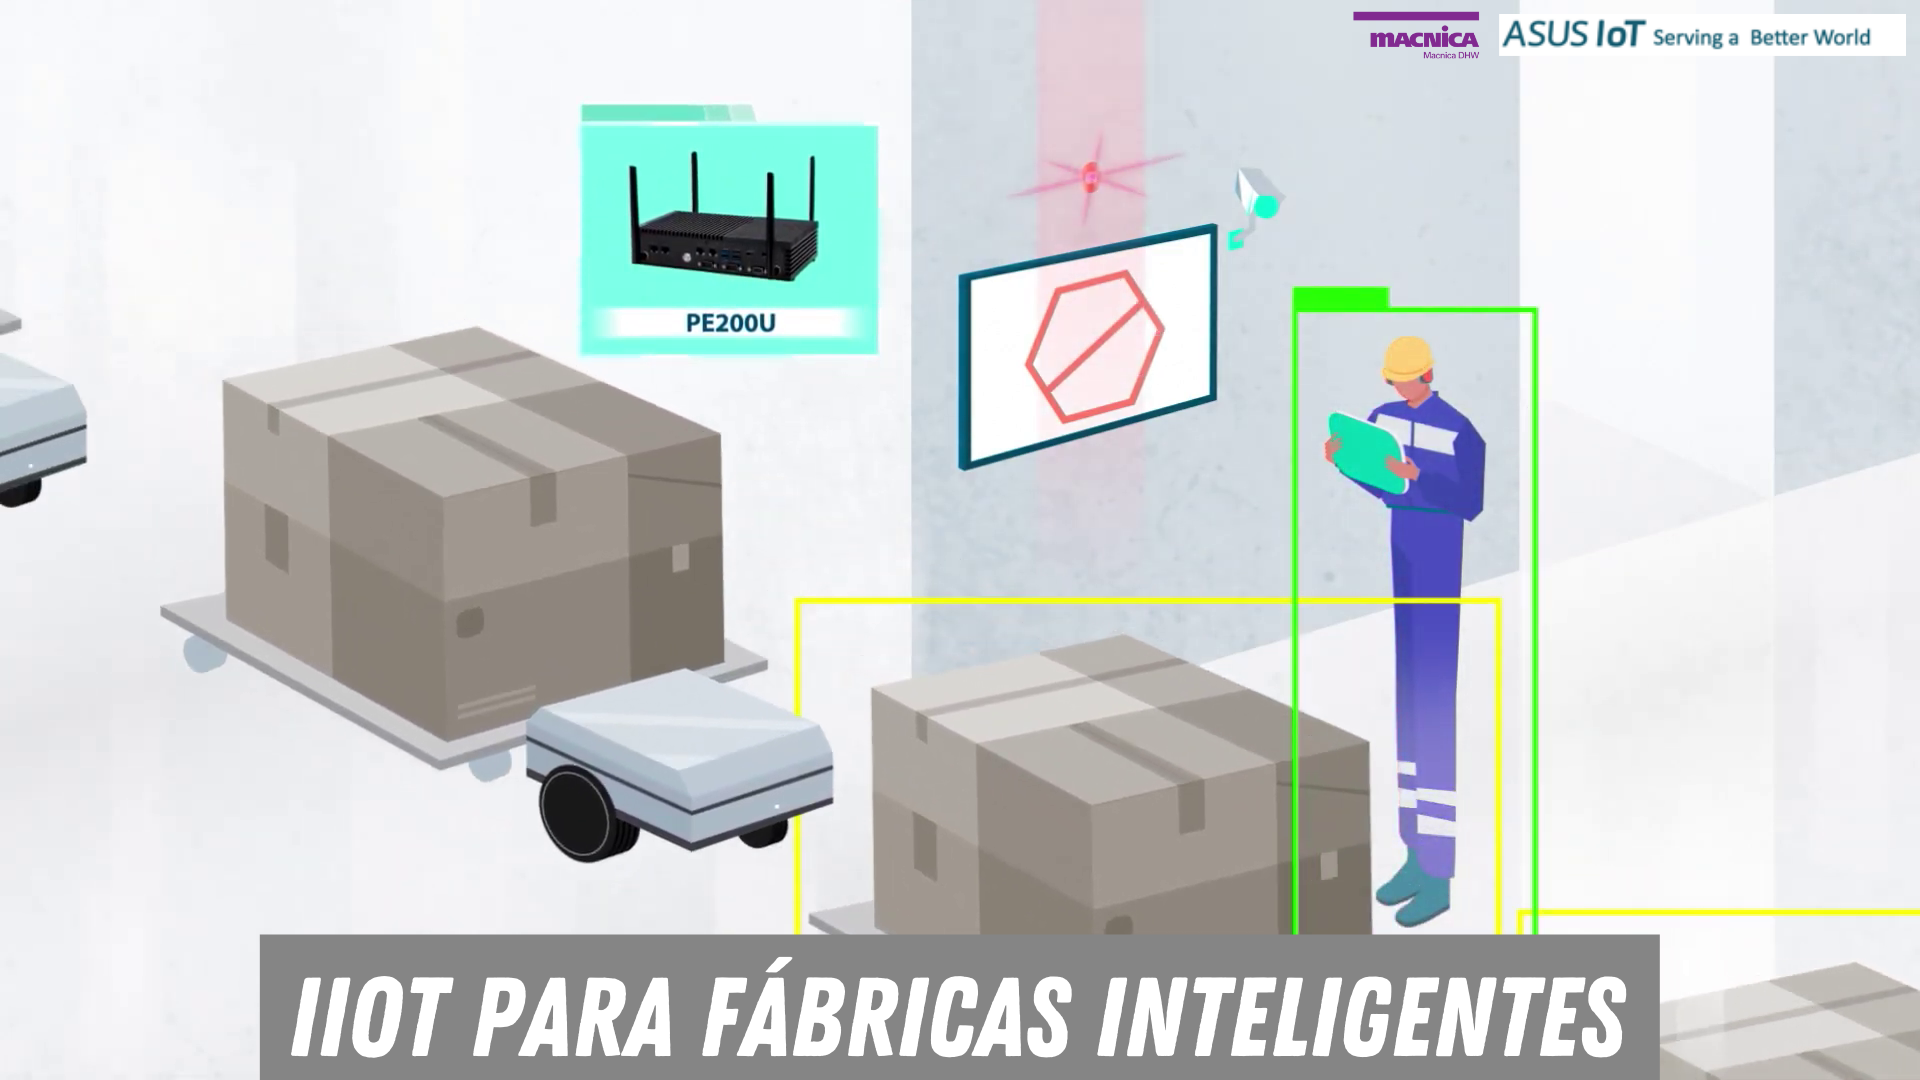 You are currently viewing IIoT para fábricas inteligentes